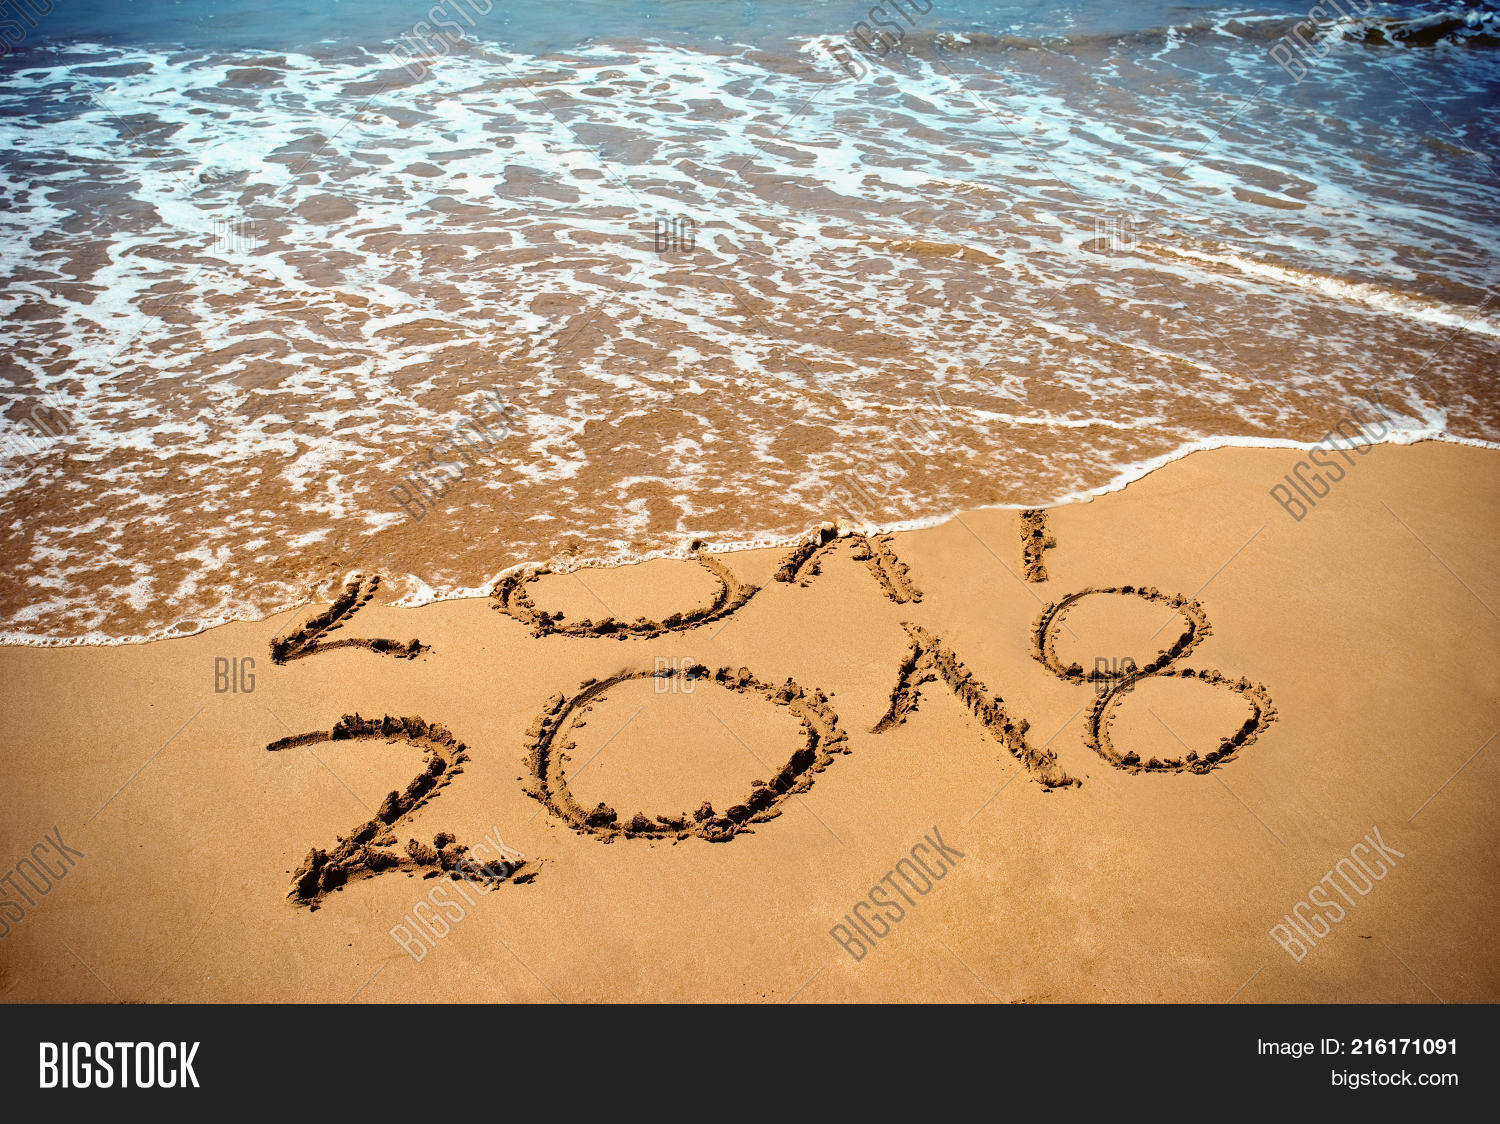 2017,2018,abstract,background,beach,beginning,calendar,celebration,christmas,clear,coastline,concept,date,december,edge,end,eve,fun,handwritten,happy,holiday,idea,inscription,nature,new,number,ocean,paradise,relax,resort,ripple,sand,sea,seaside,shore,sign,sunny,symbol,text,time,tourism,travel,trip,tropical,vacation,water,wave,winter,word,year